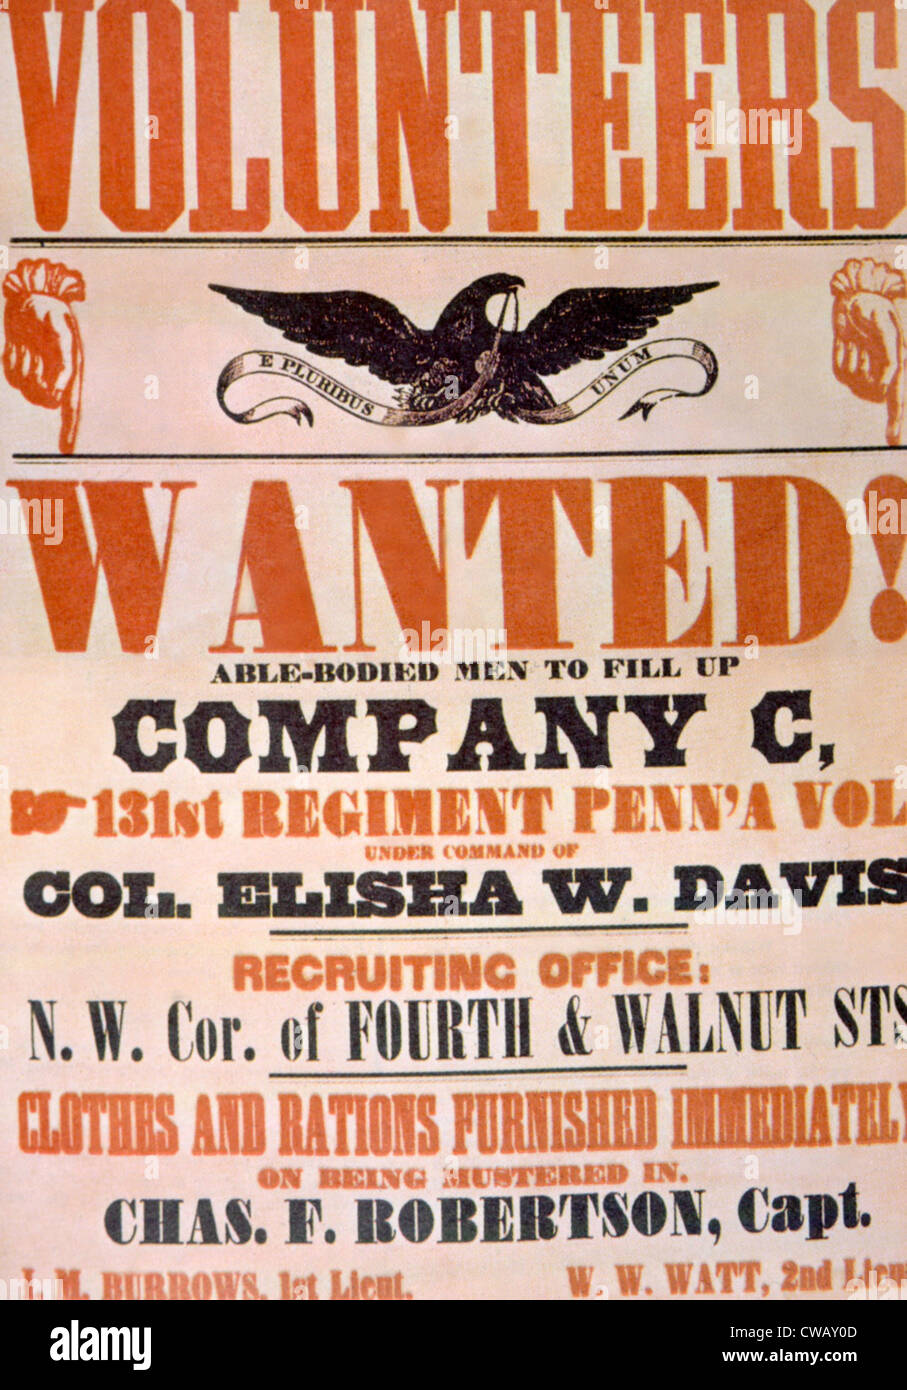 Affiche de recrutement de l'Armée de l'Union, ca. 1861 Photo Stock